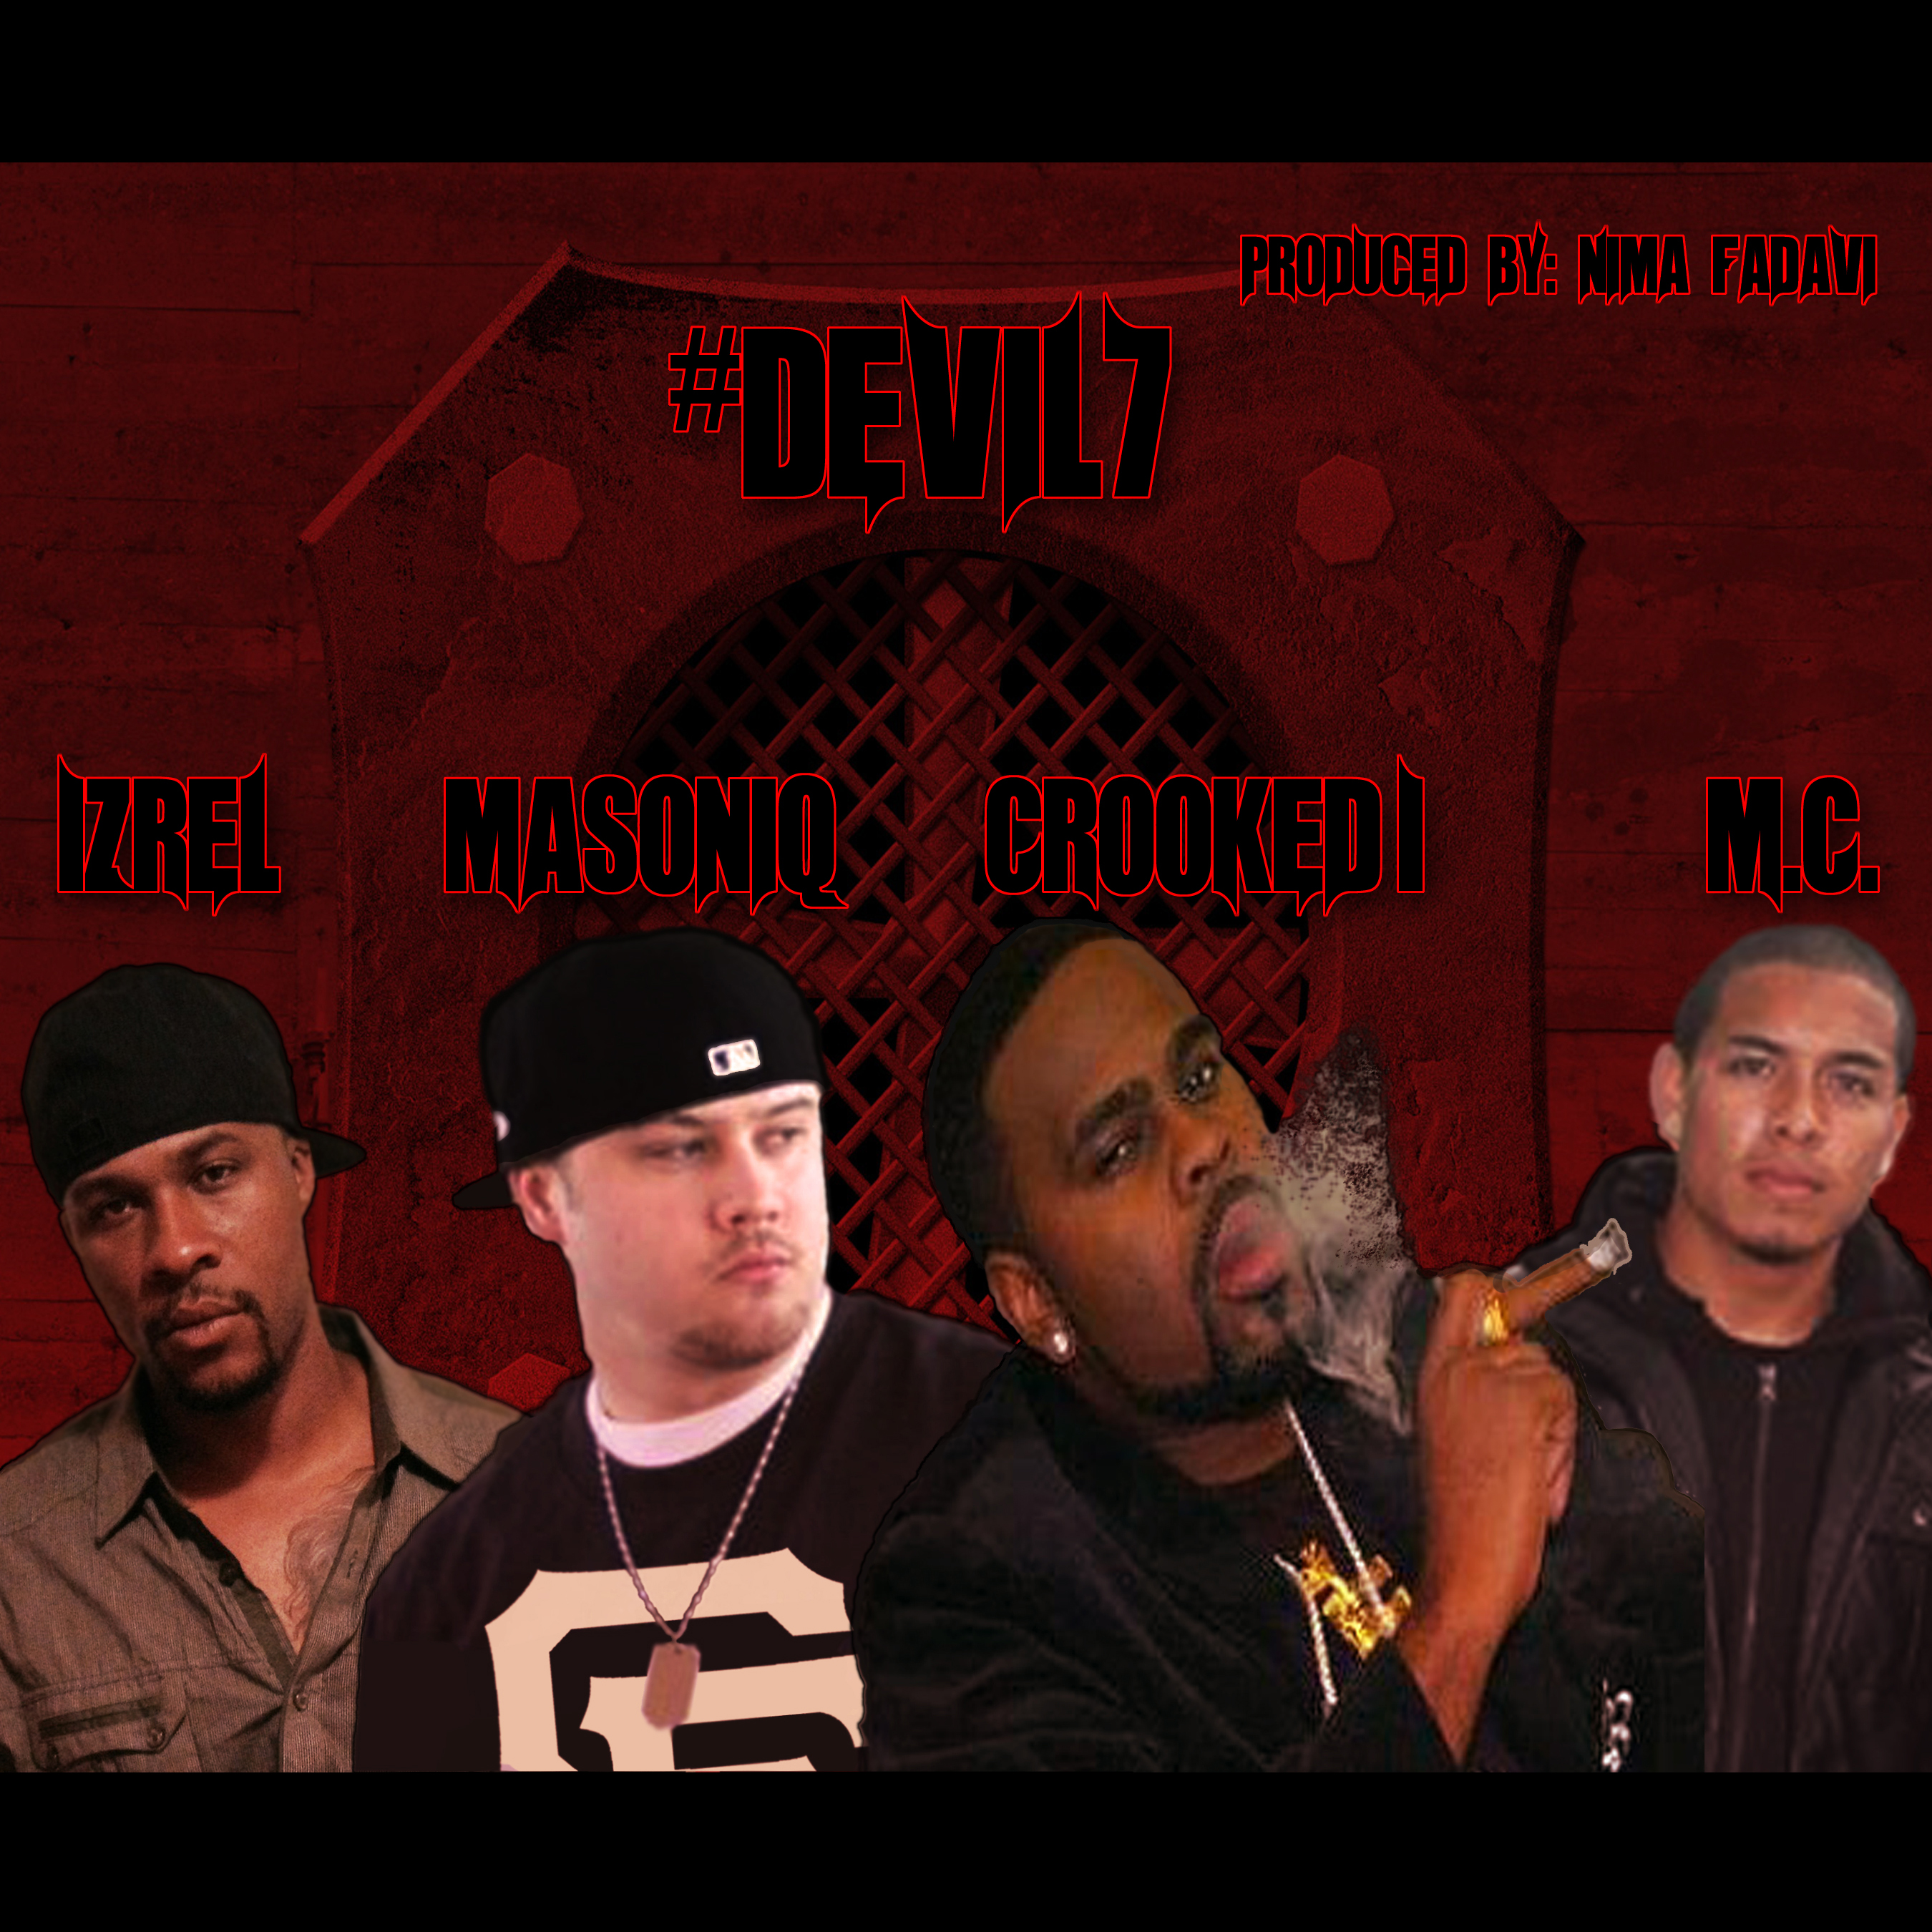 Masoniq ft. Crooked I, Izrel & M.C. - Devil7 (prod. Nima Fadavi) [Thizzler.com]